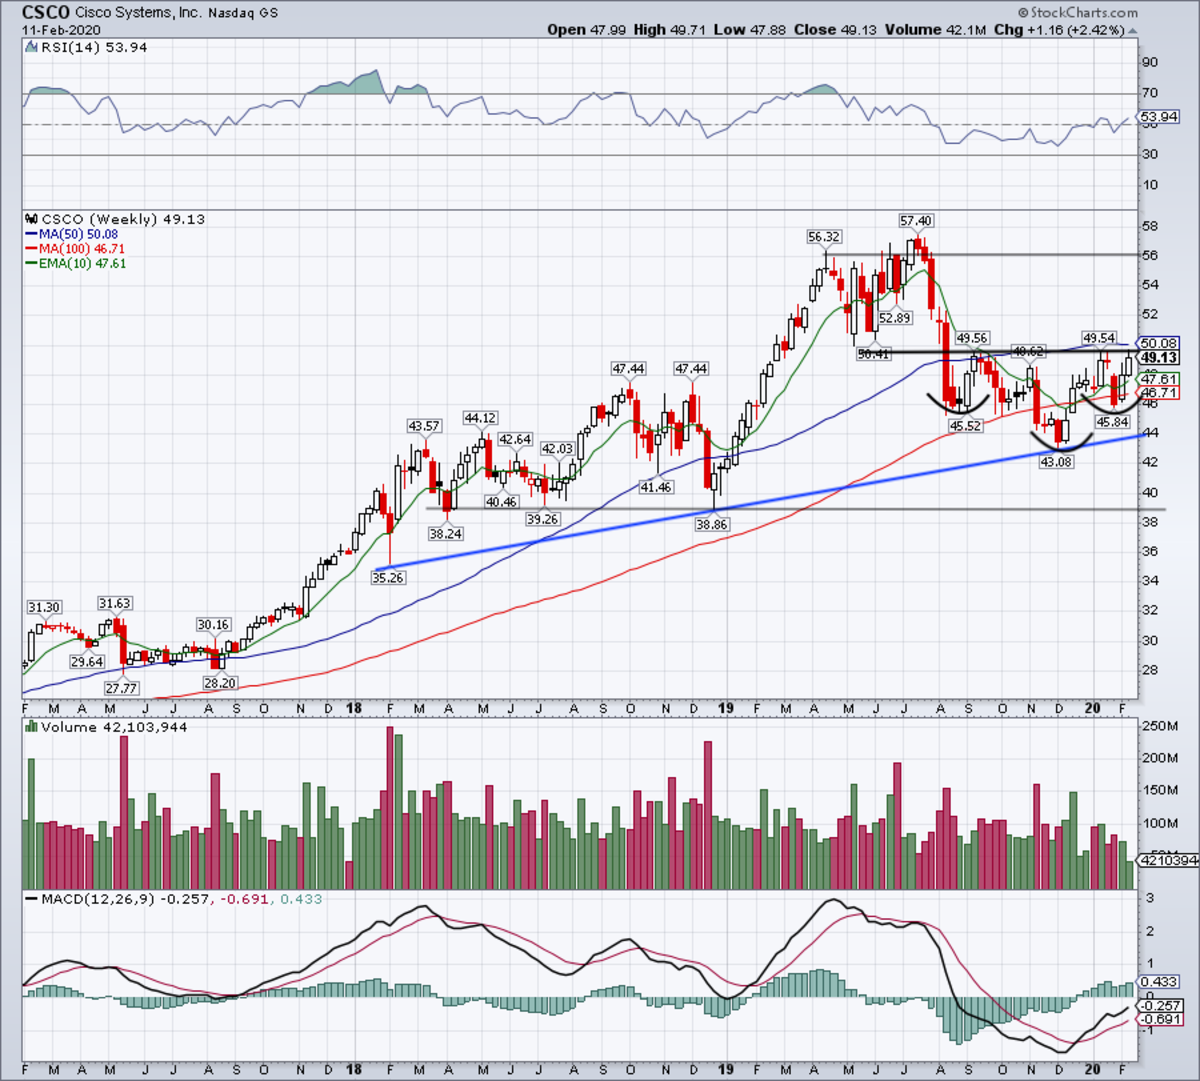 Weekly chart of Cisco stock.